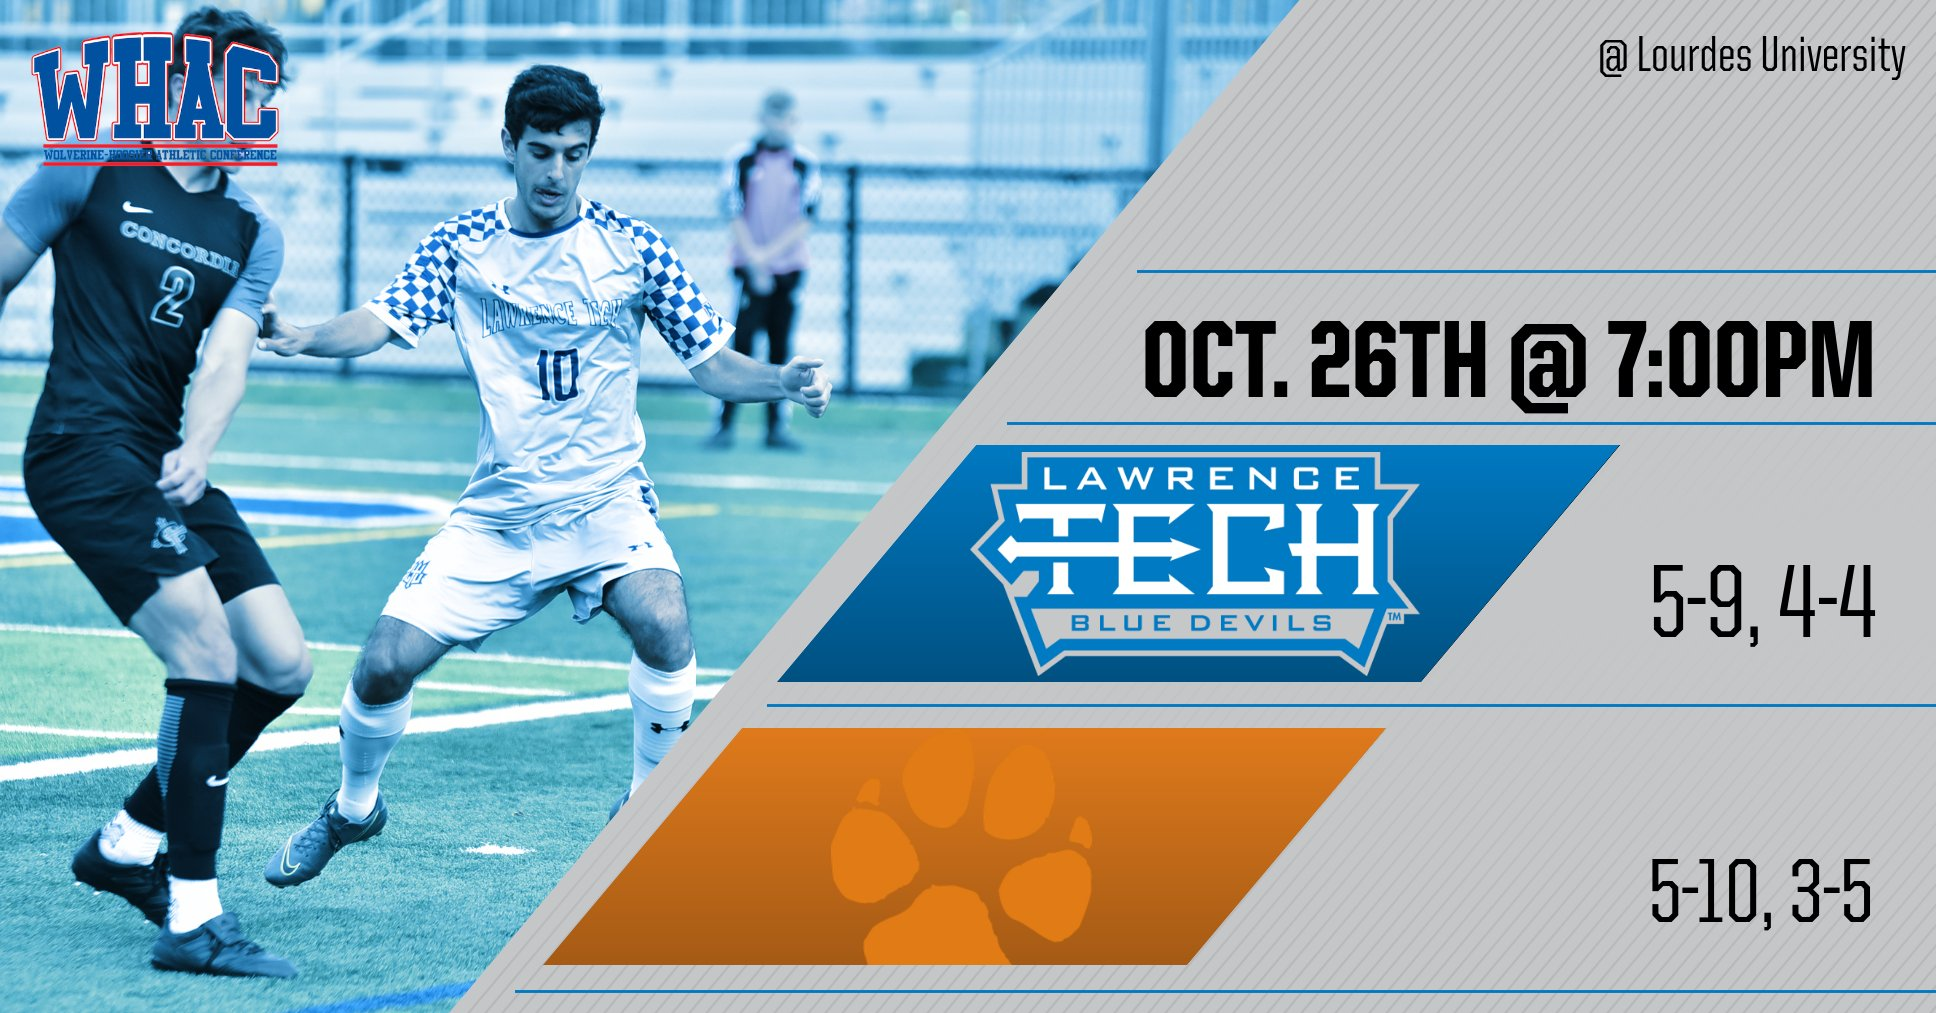 The Push for the WHAC Tournament Continues This Saturday vs Lourdes (Ohio) University for the Men's Soccer Team